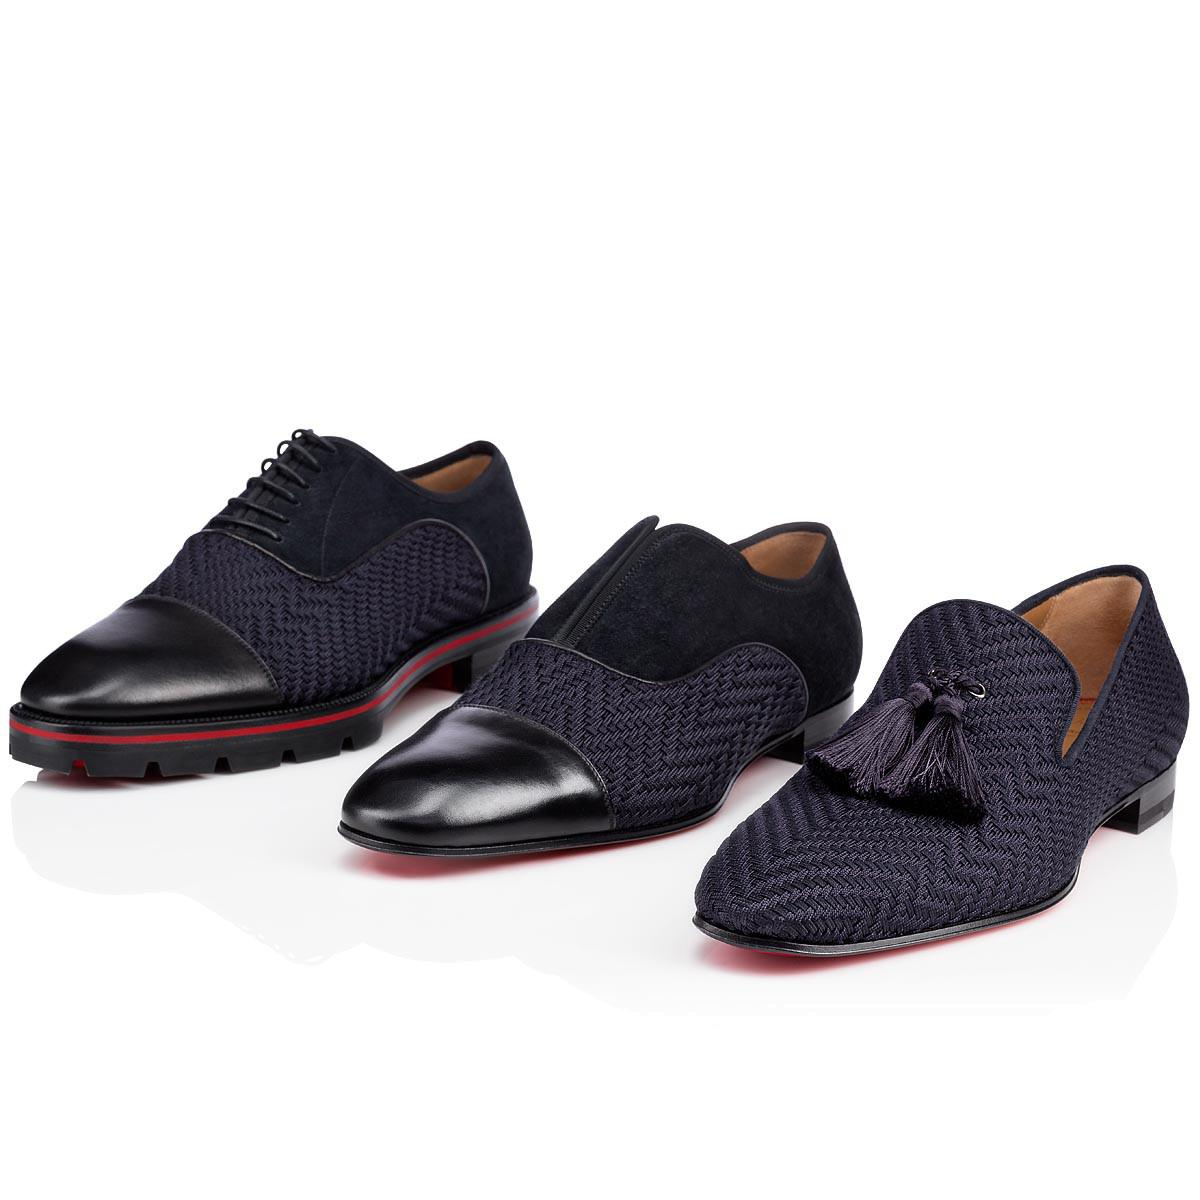 027cea34fd3b Lyst - Christian Louboutin Officialito Flat in Blue for Men